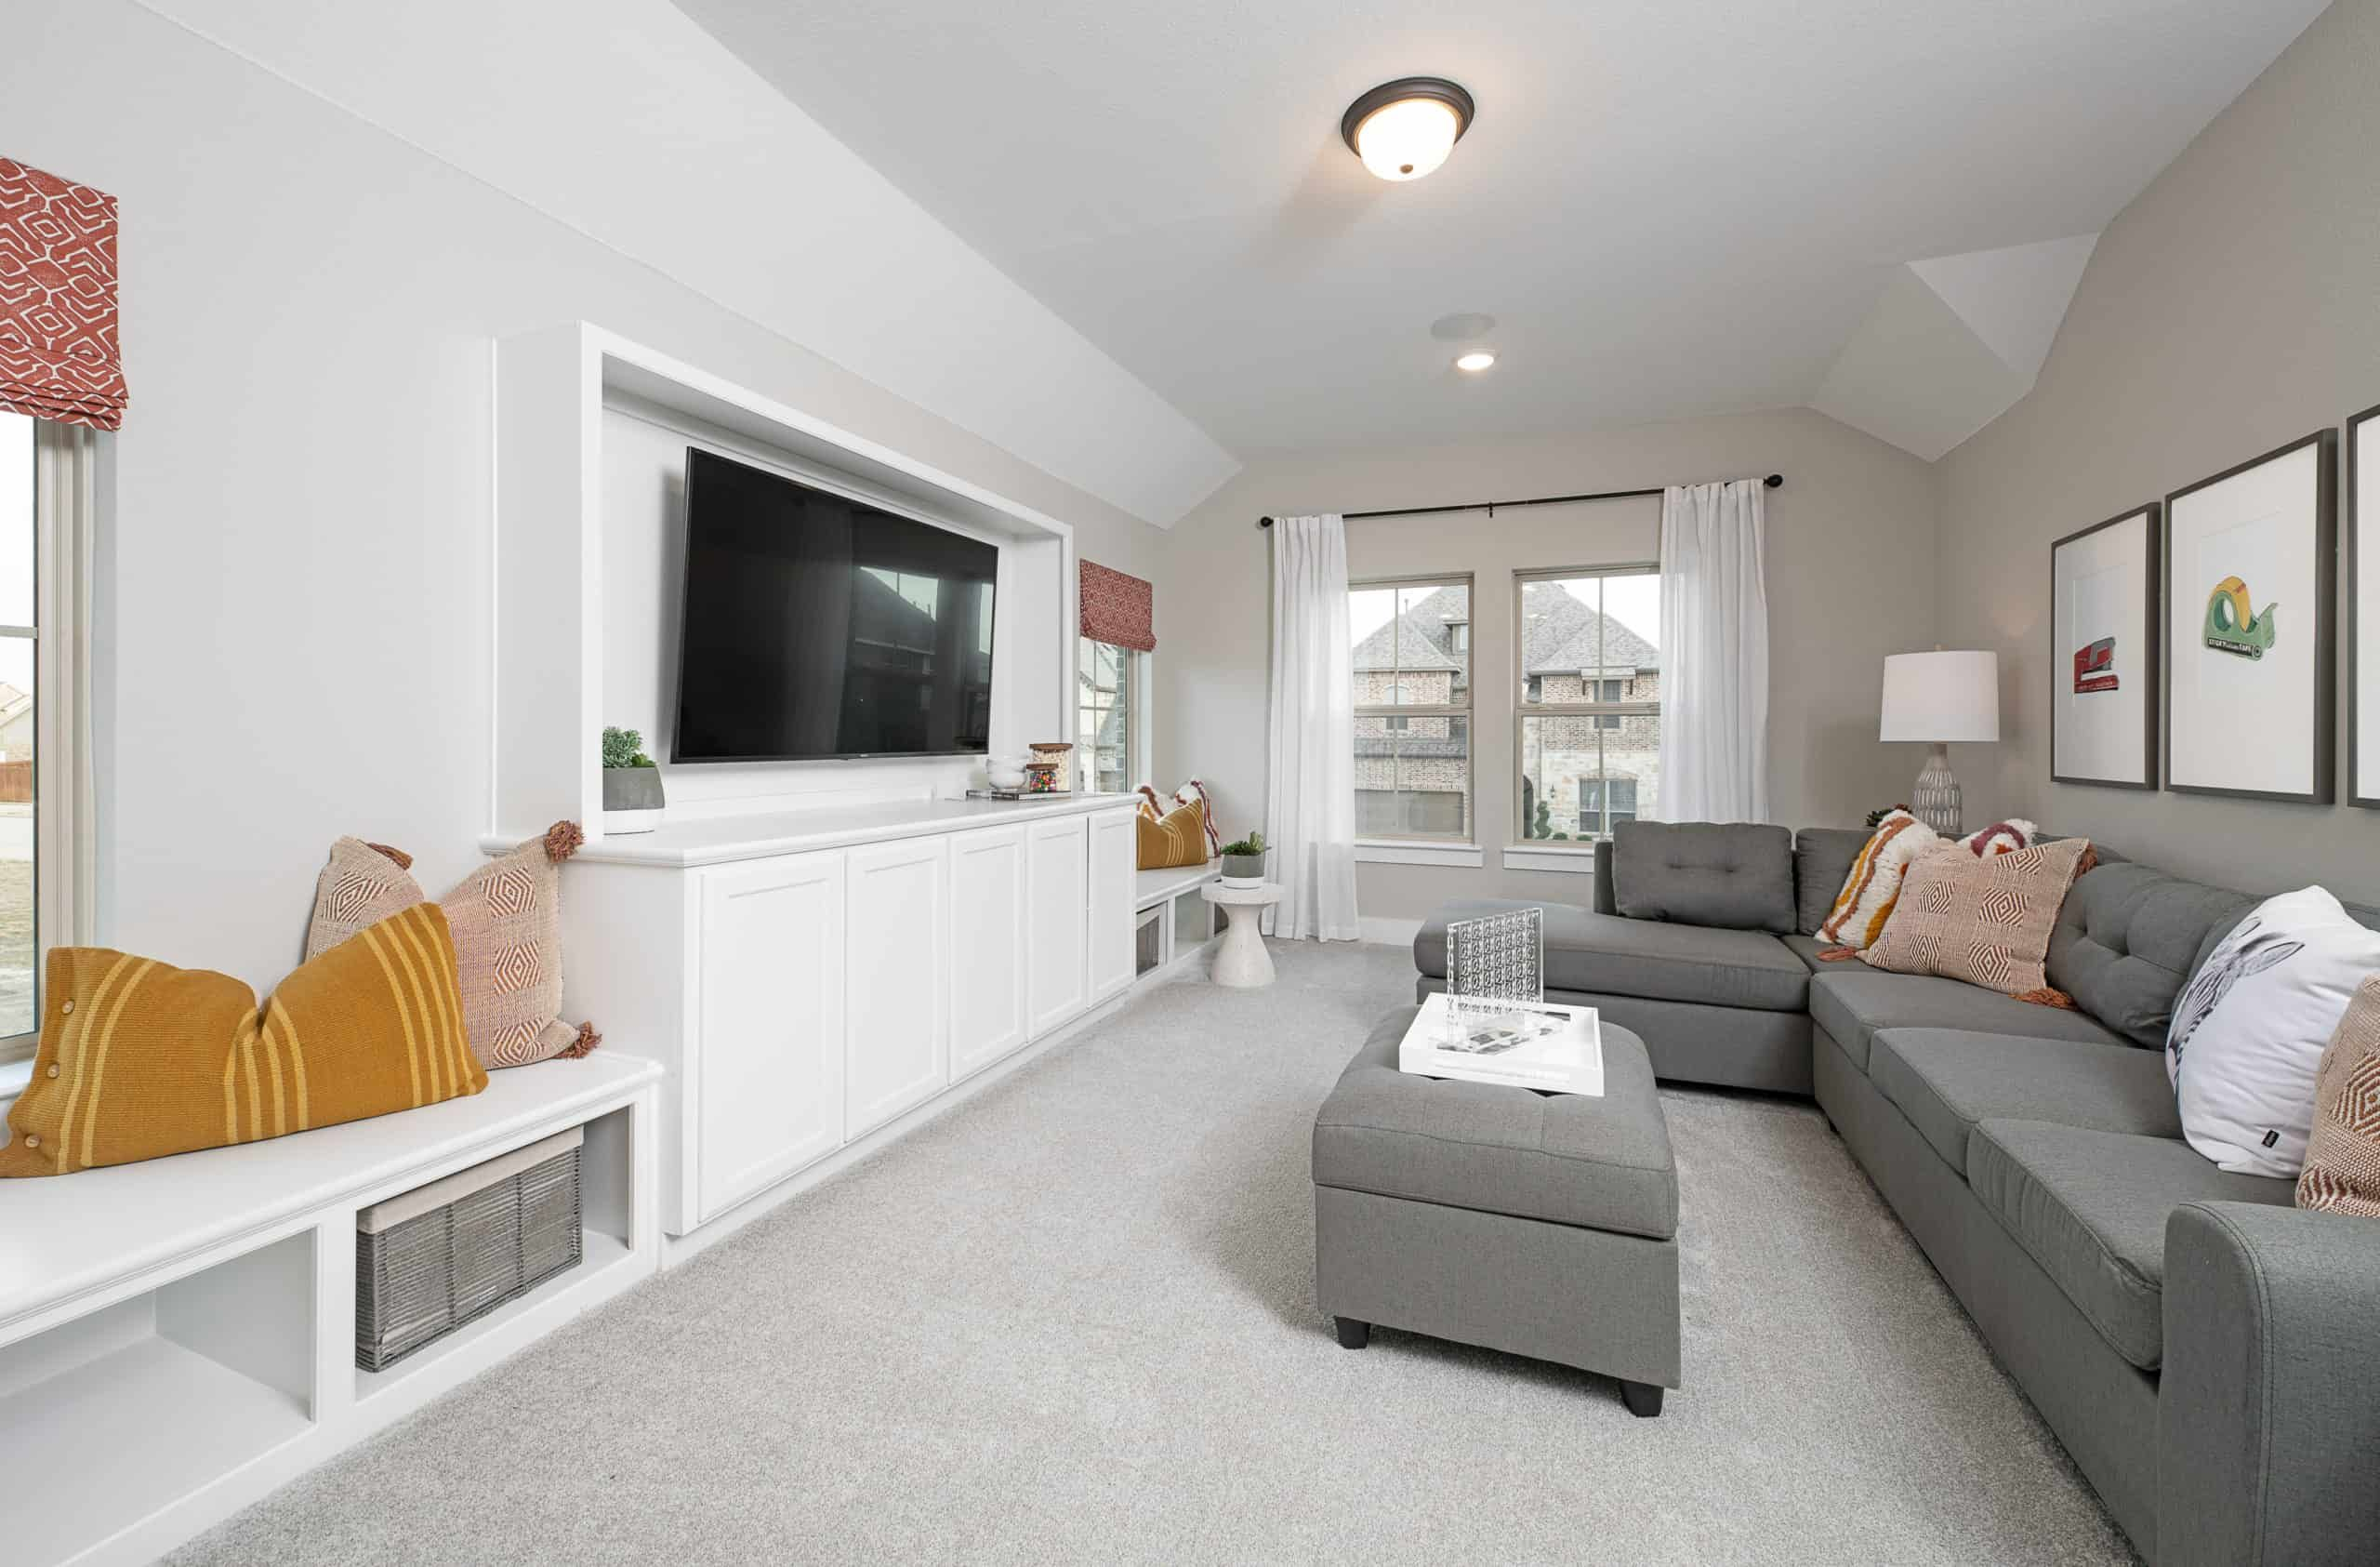 Living Area featured in the Lillian By Tri Pointe Homes in Dallas, TX